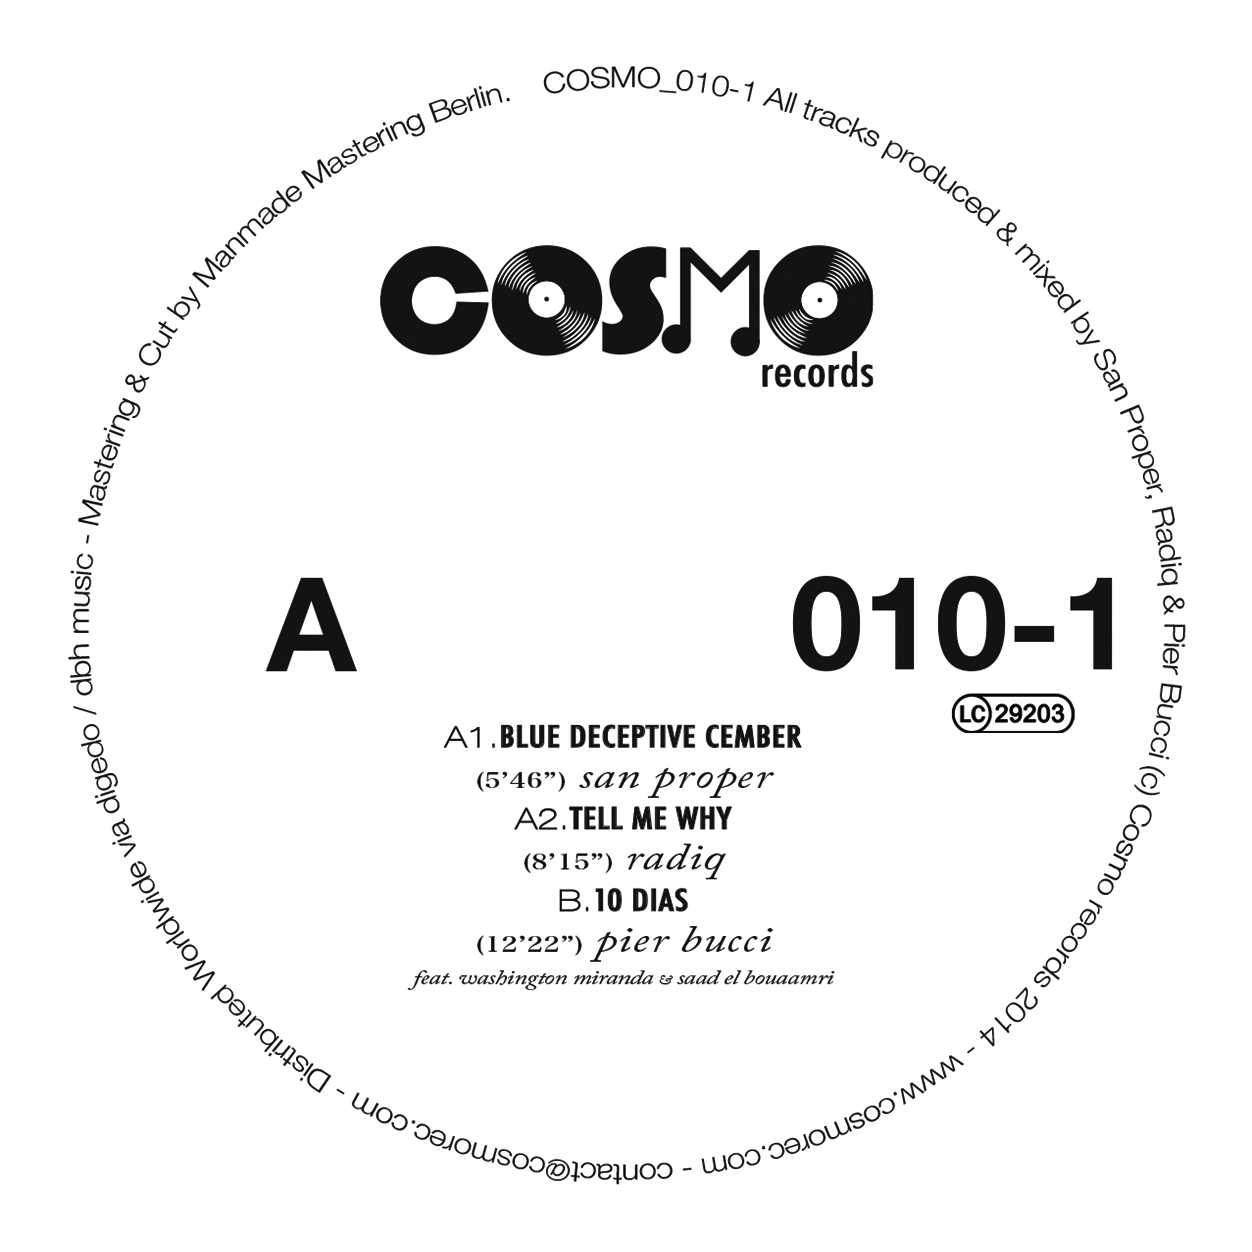 12inch_Etikett_Label_100mm-Cosmo010-1-A-Front with Cutting Marks